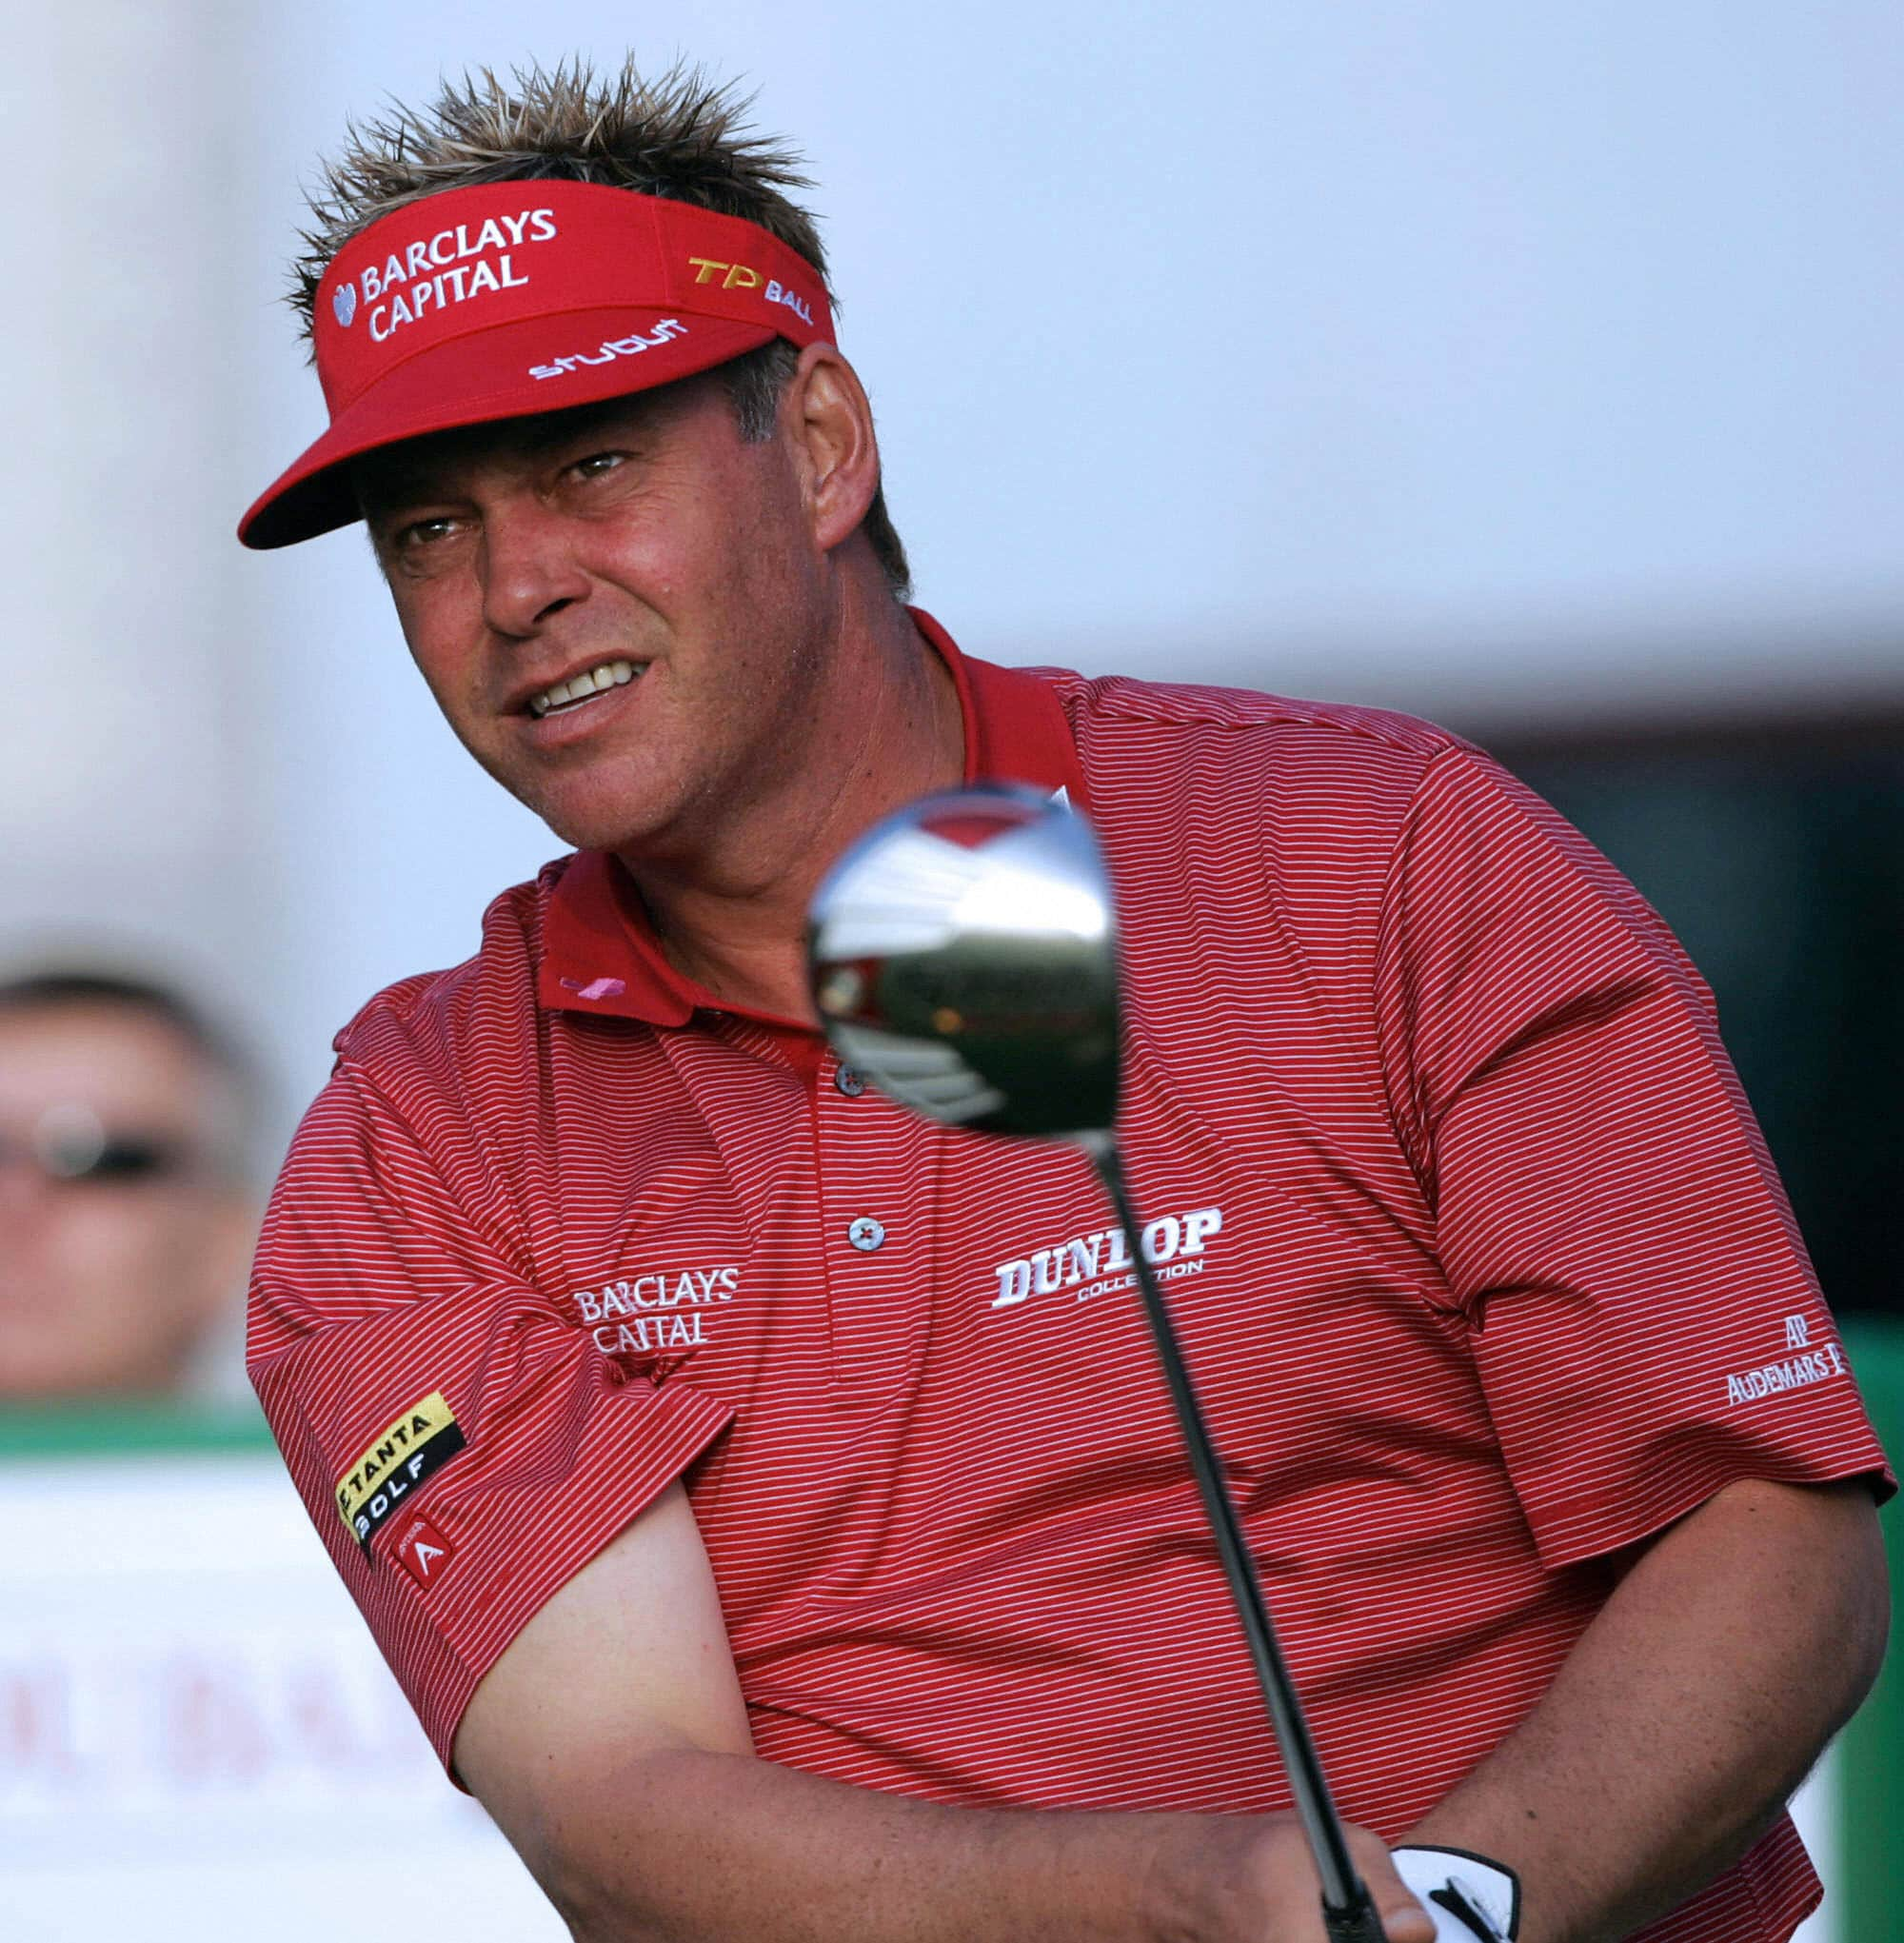 Darren Clarke with a spiked haircut in 2008